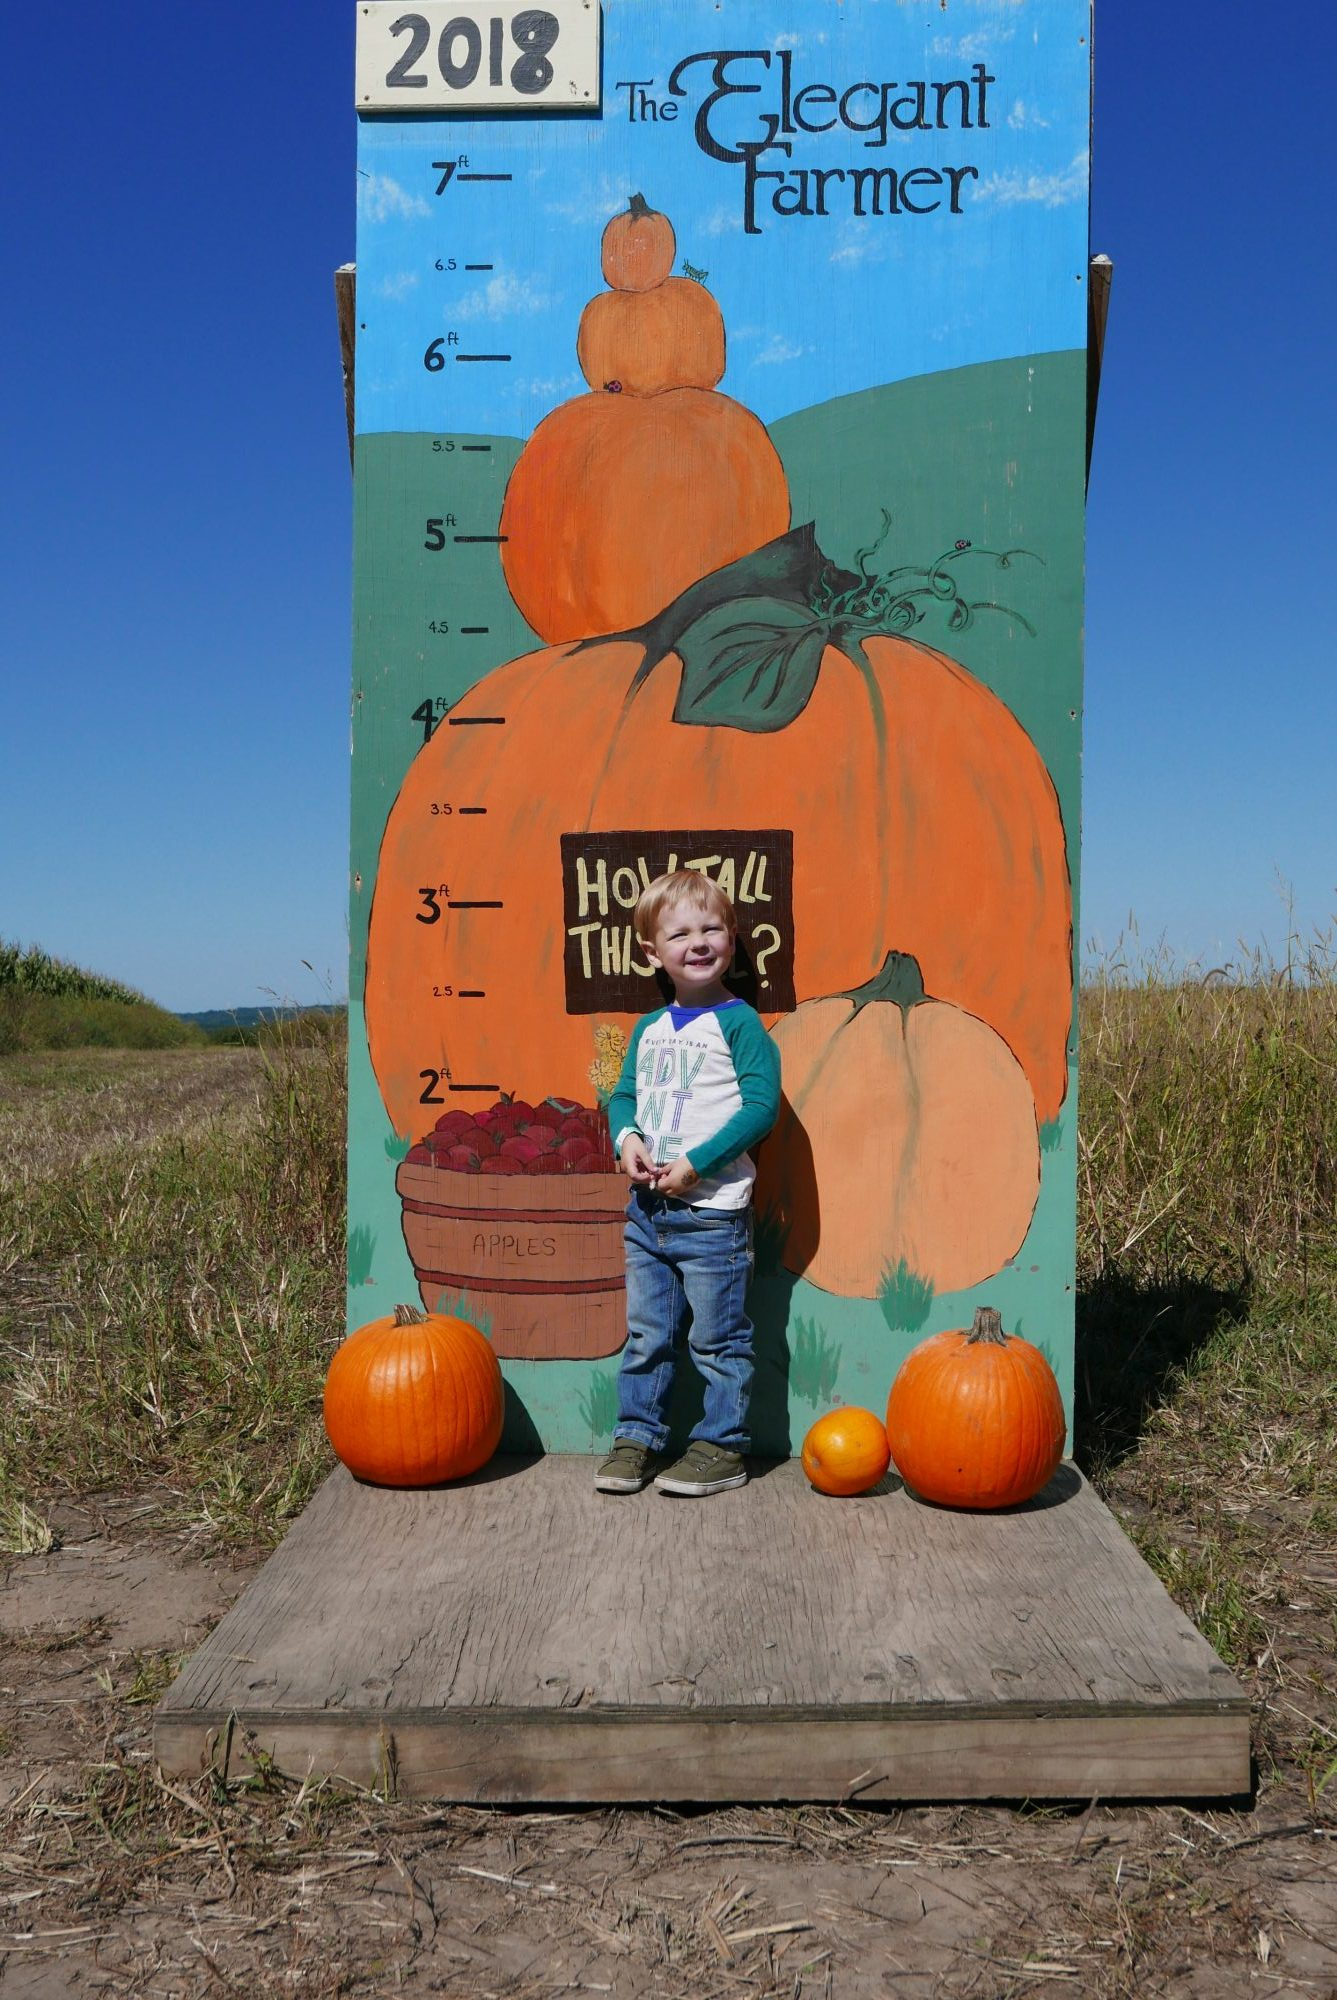 Pumpkin Patch at Elegant Farmer